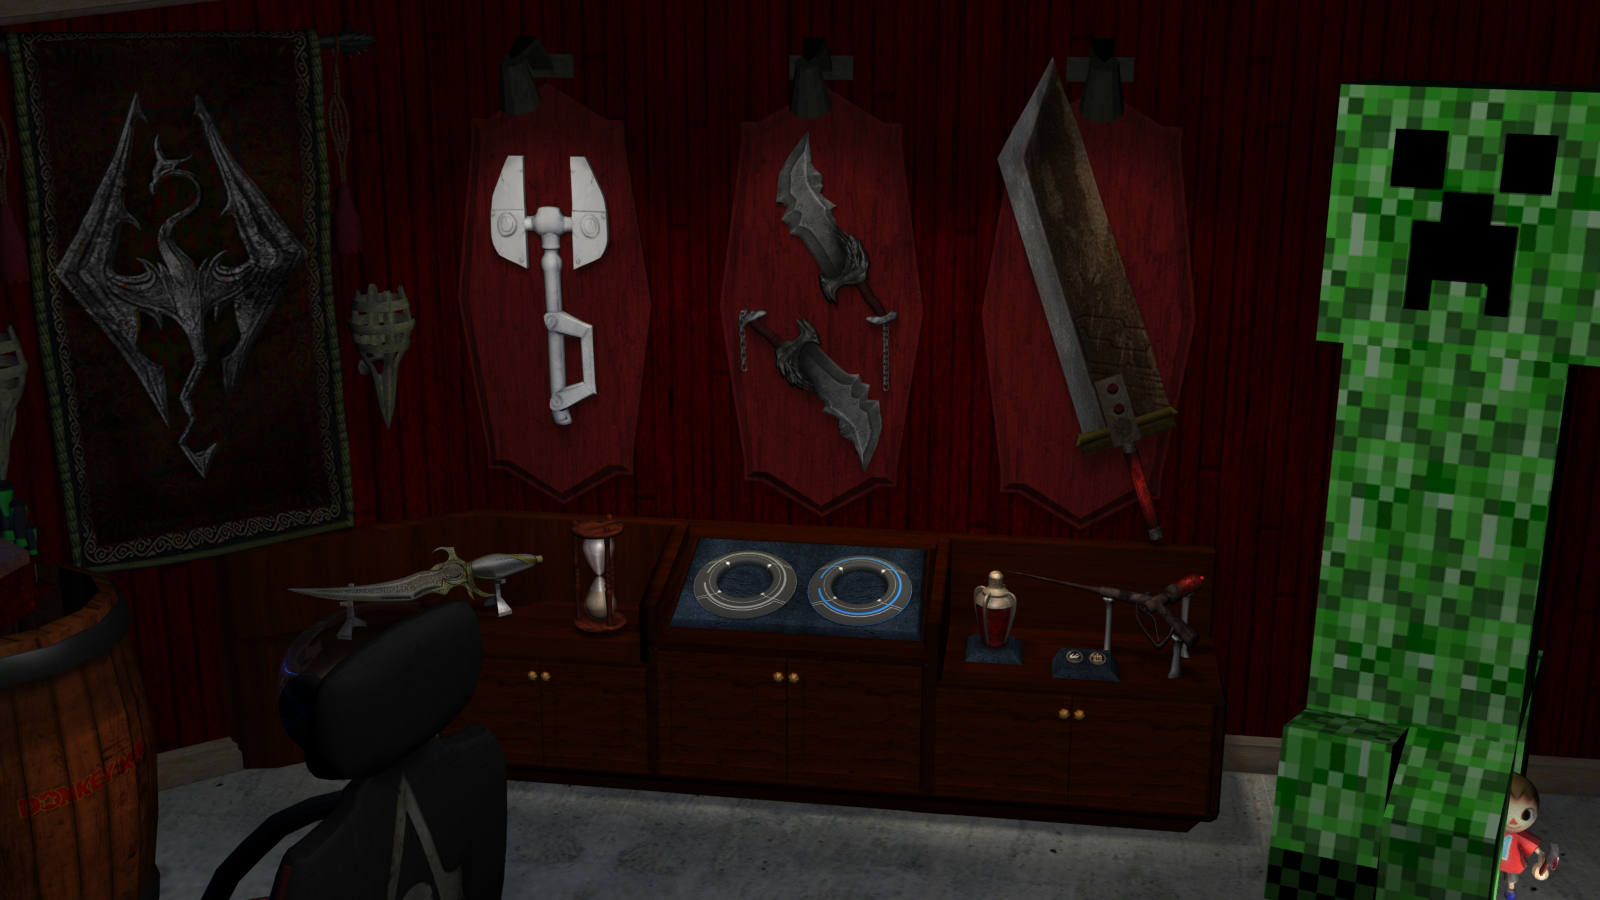 The Collection (RoomRight)